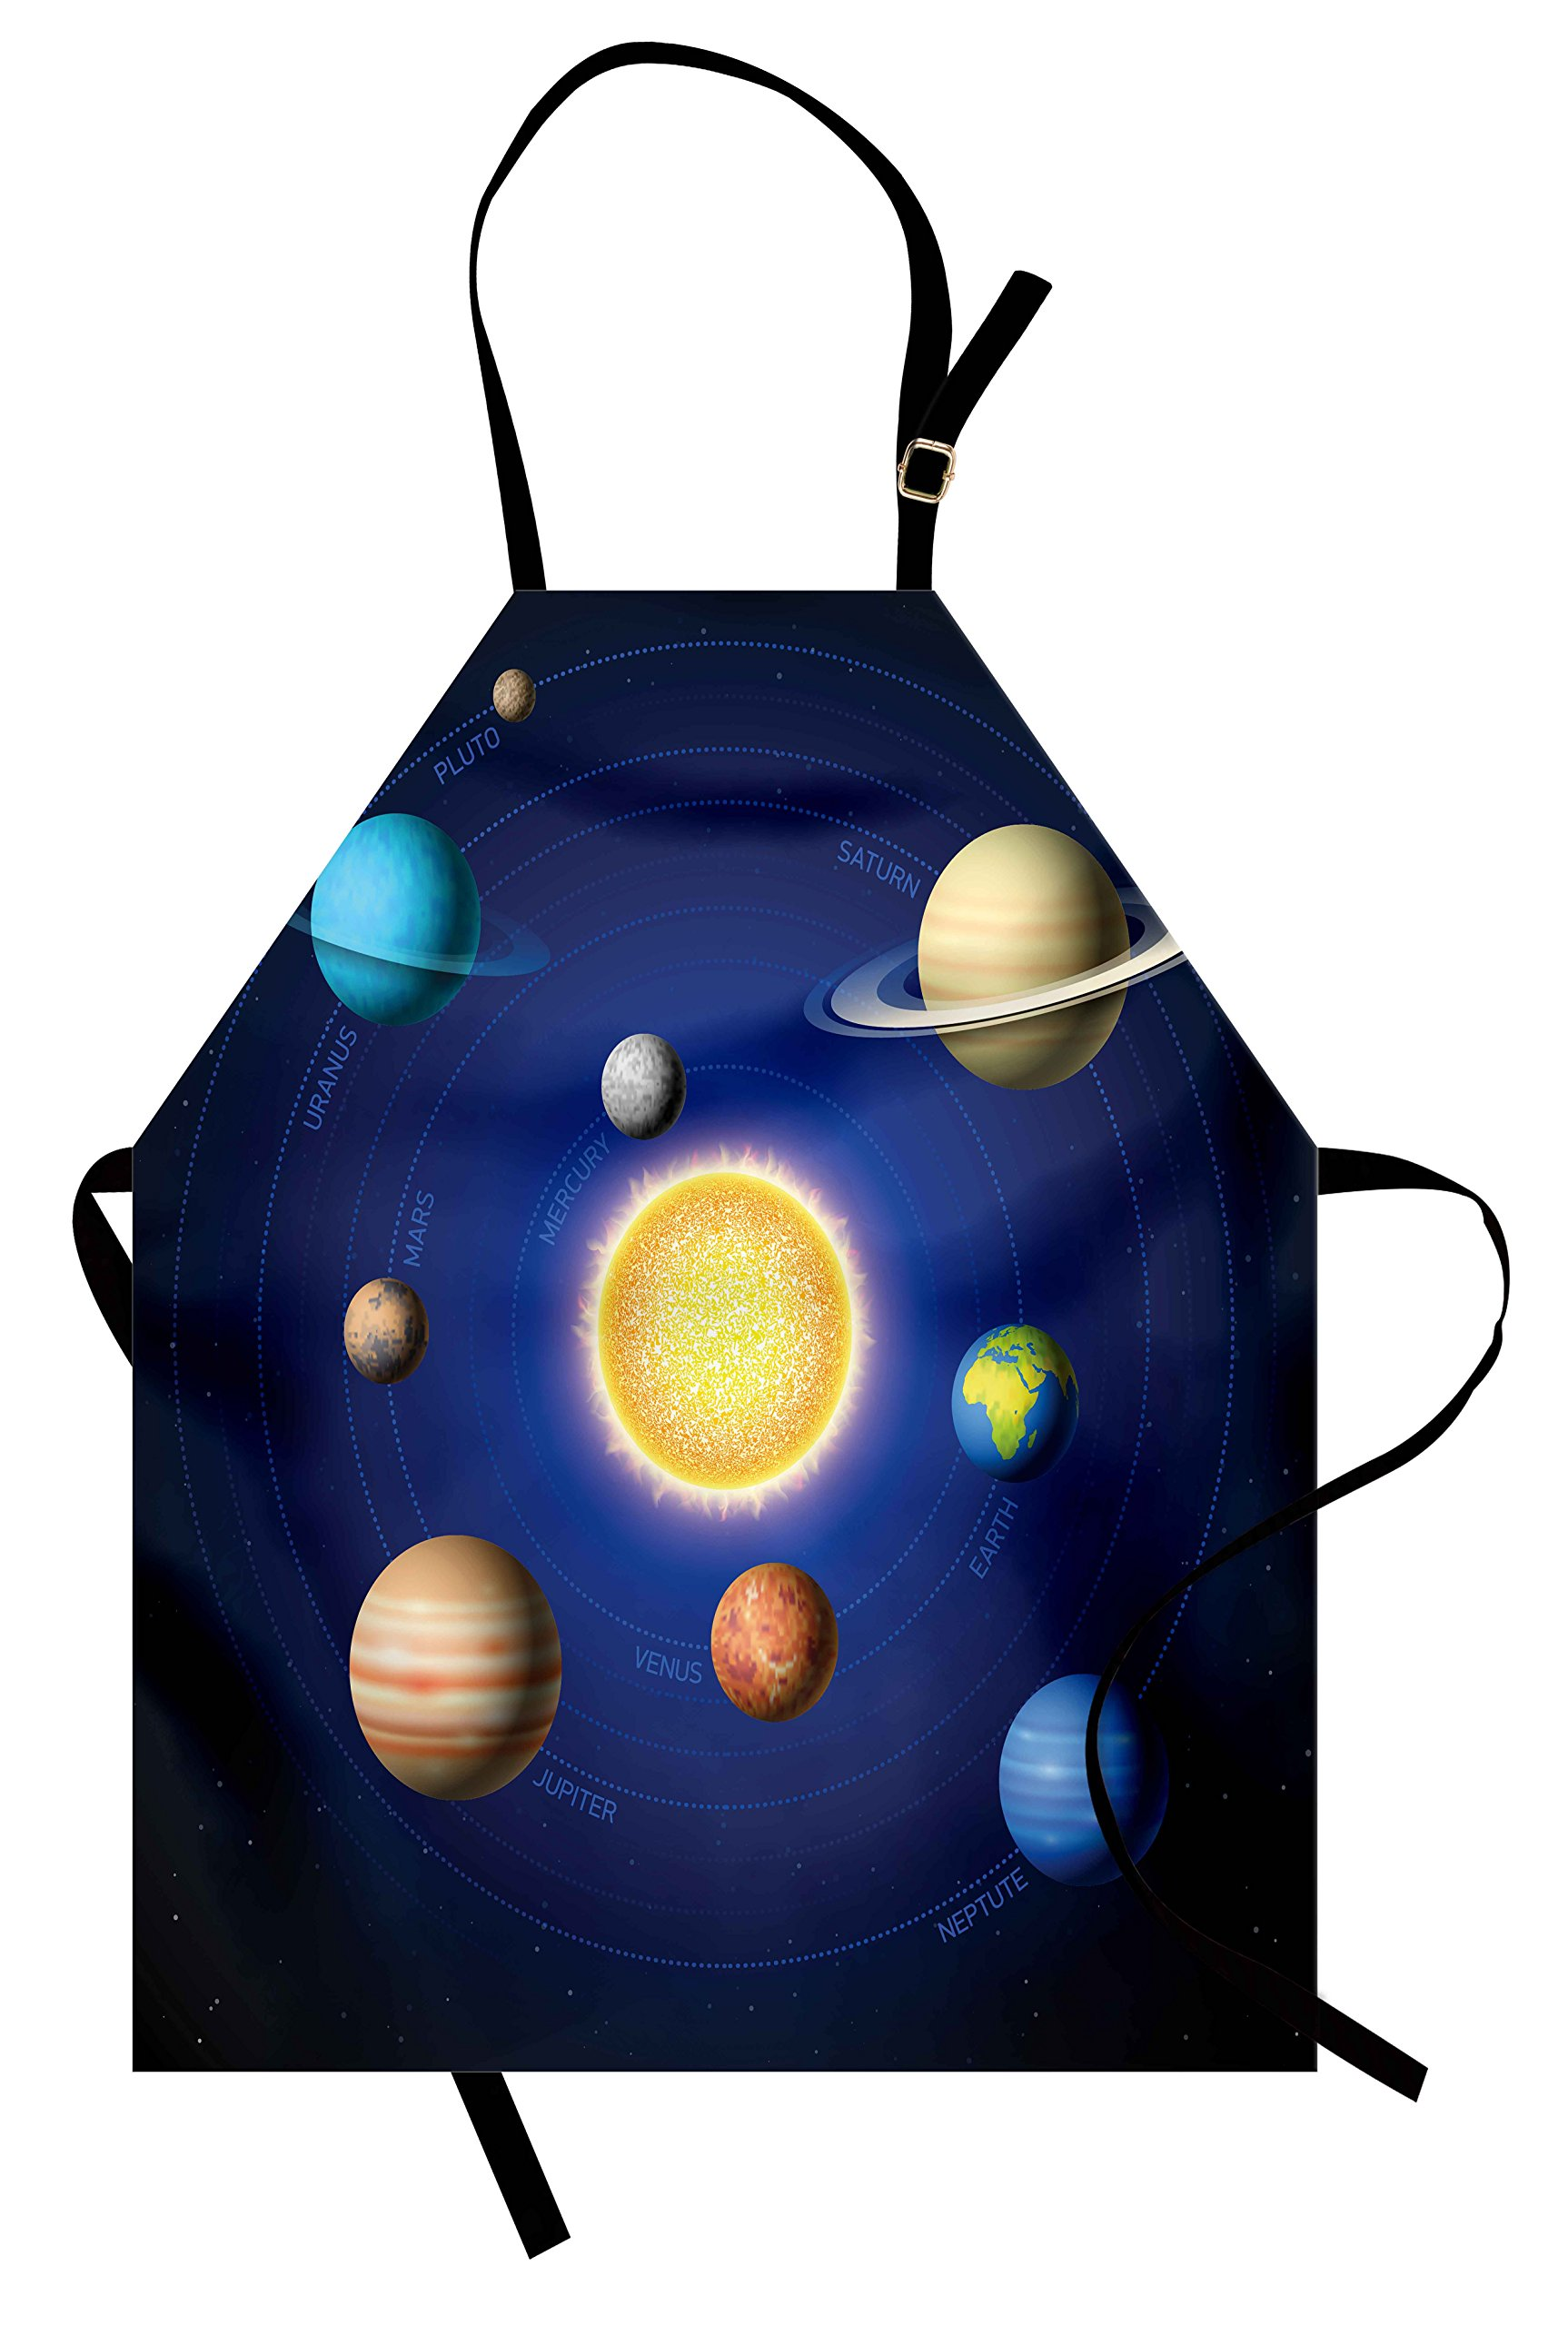 Ambesonne Space Apron, Solar System Illustration Showing Planets Around Sun Harmony of Galaxy Science Room Image, Unisex Kitchen Bib Apron with Adjustable Neck for Cooking Baking Gardening, Multi